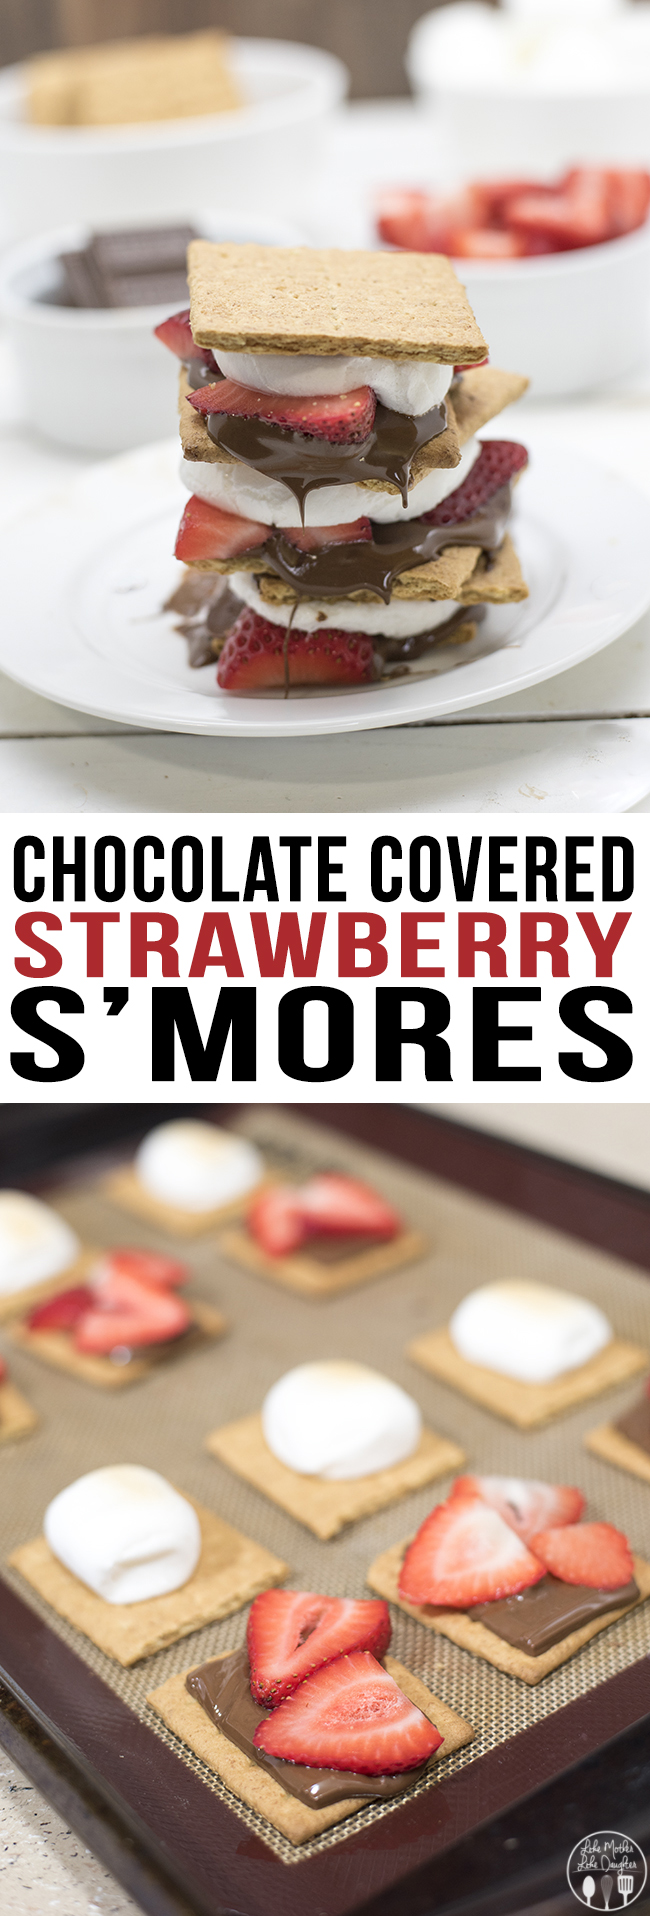 Chocolate Covered Strawberry S'mores - The addition of strawberries to your smores makes them an even more tasty summer time treat! Or make them year round in your oven!